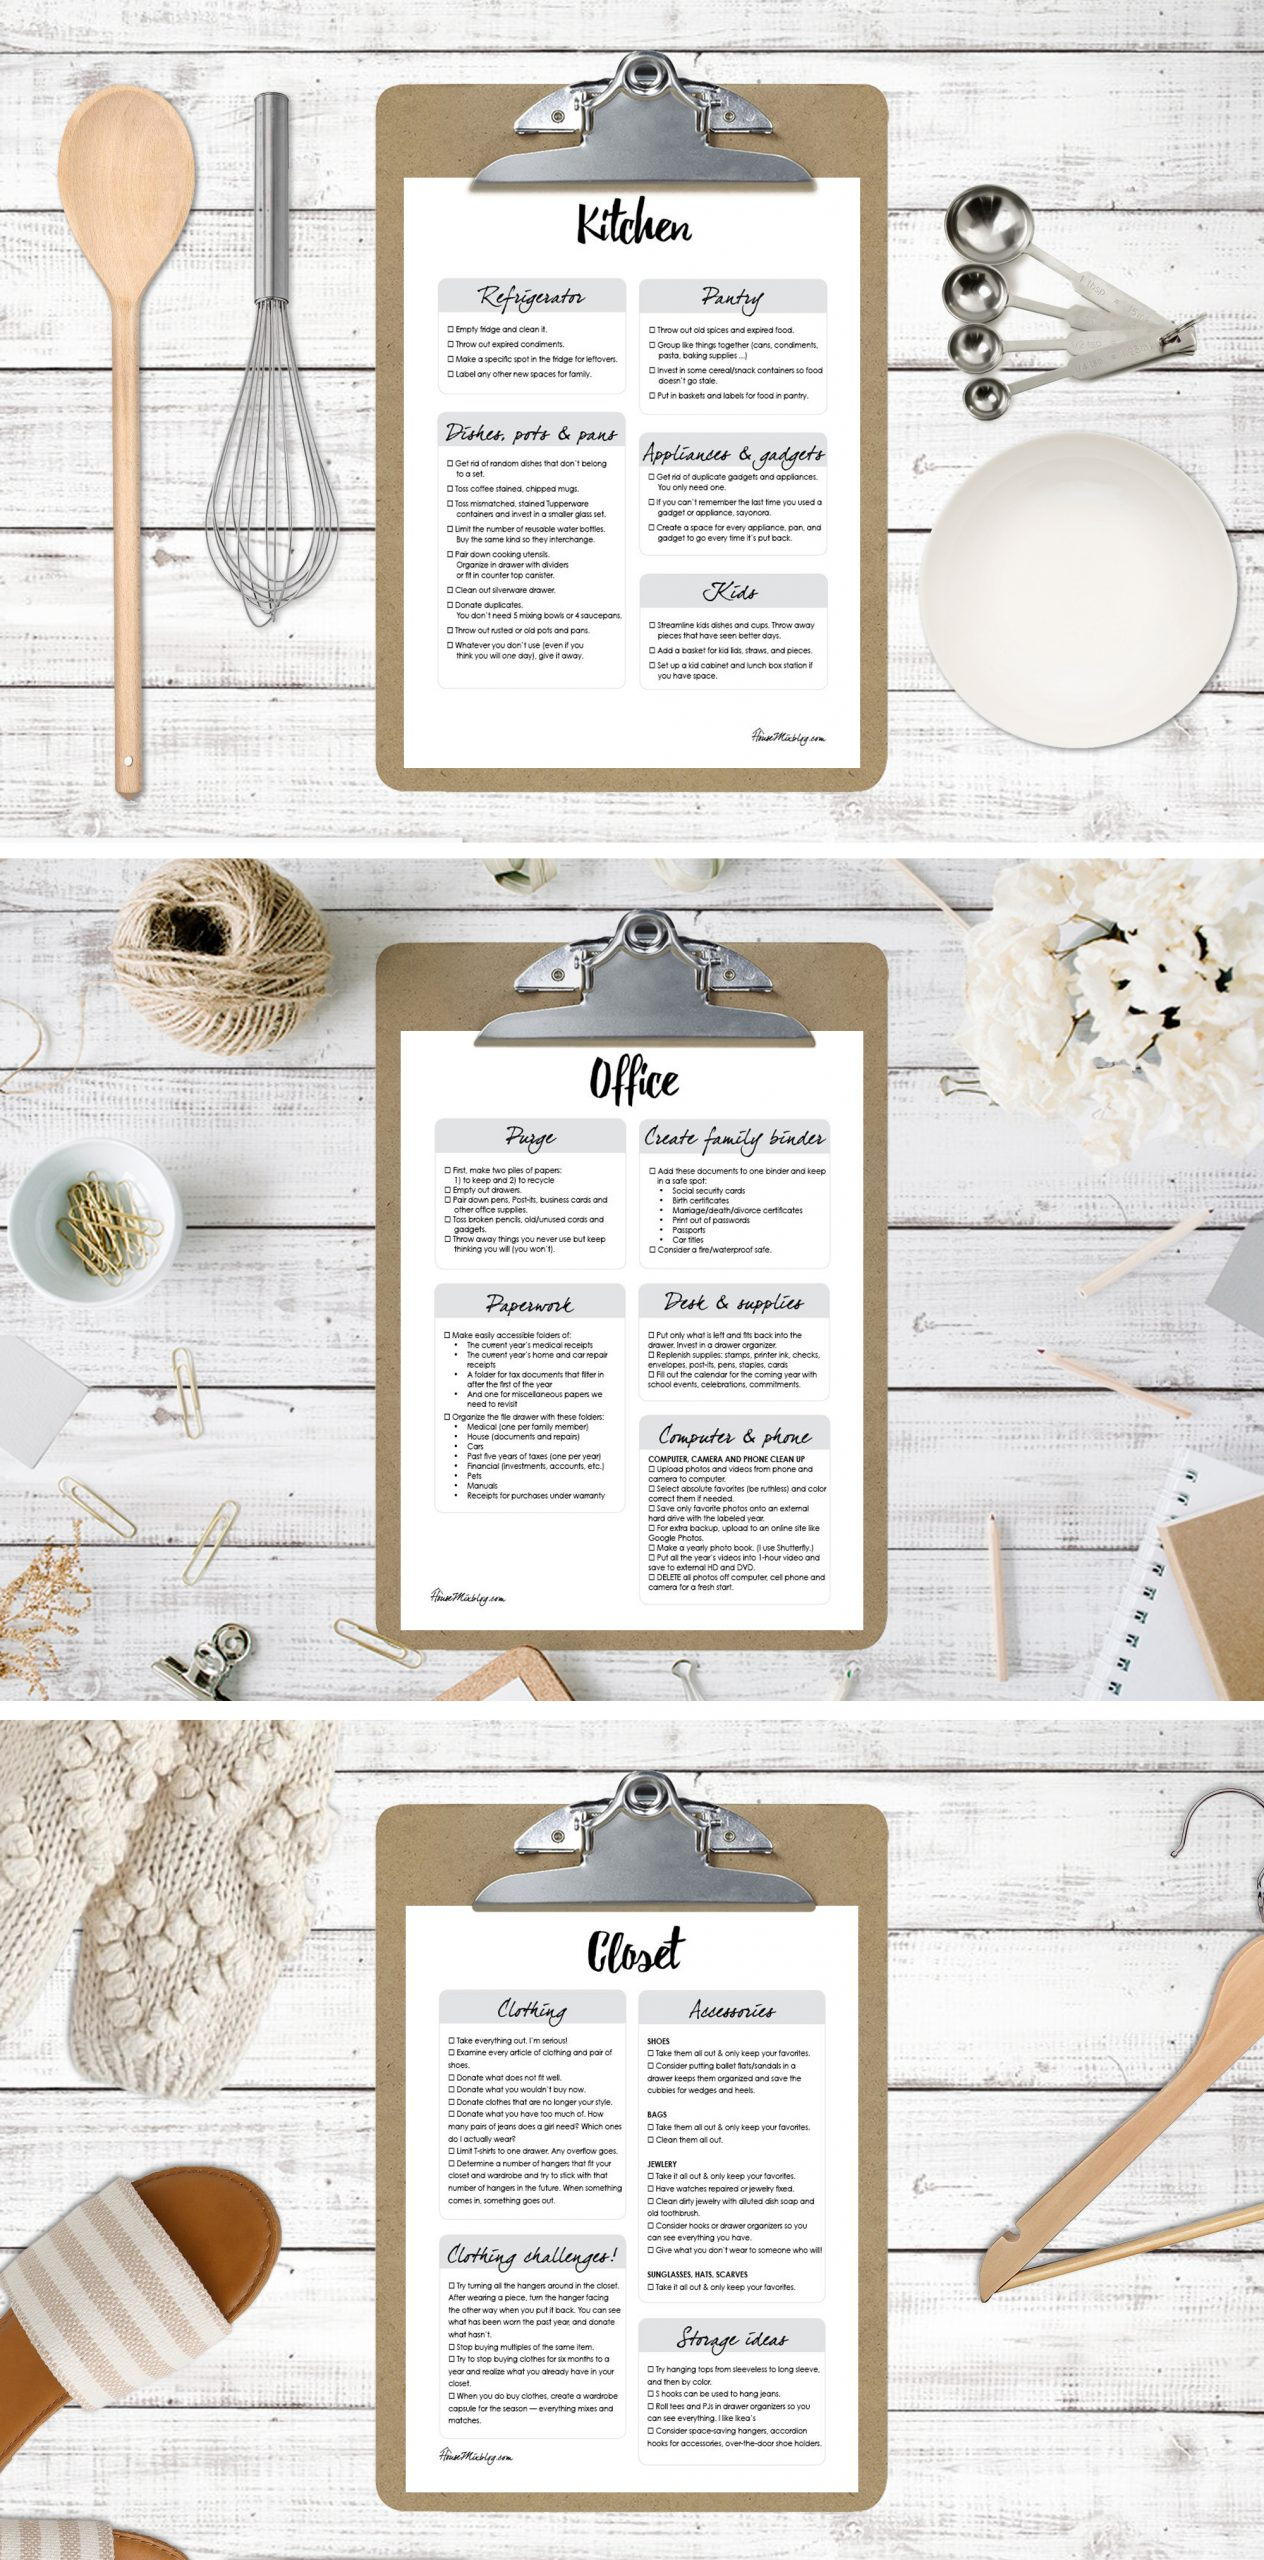 Ultimate organize house planner printables and checklists